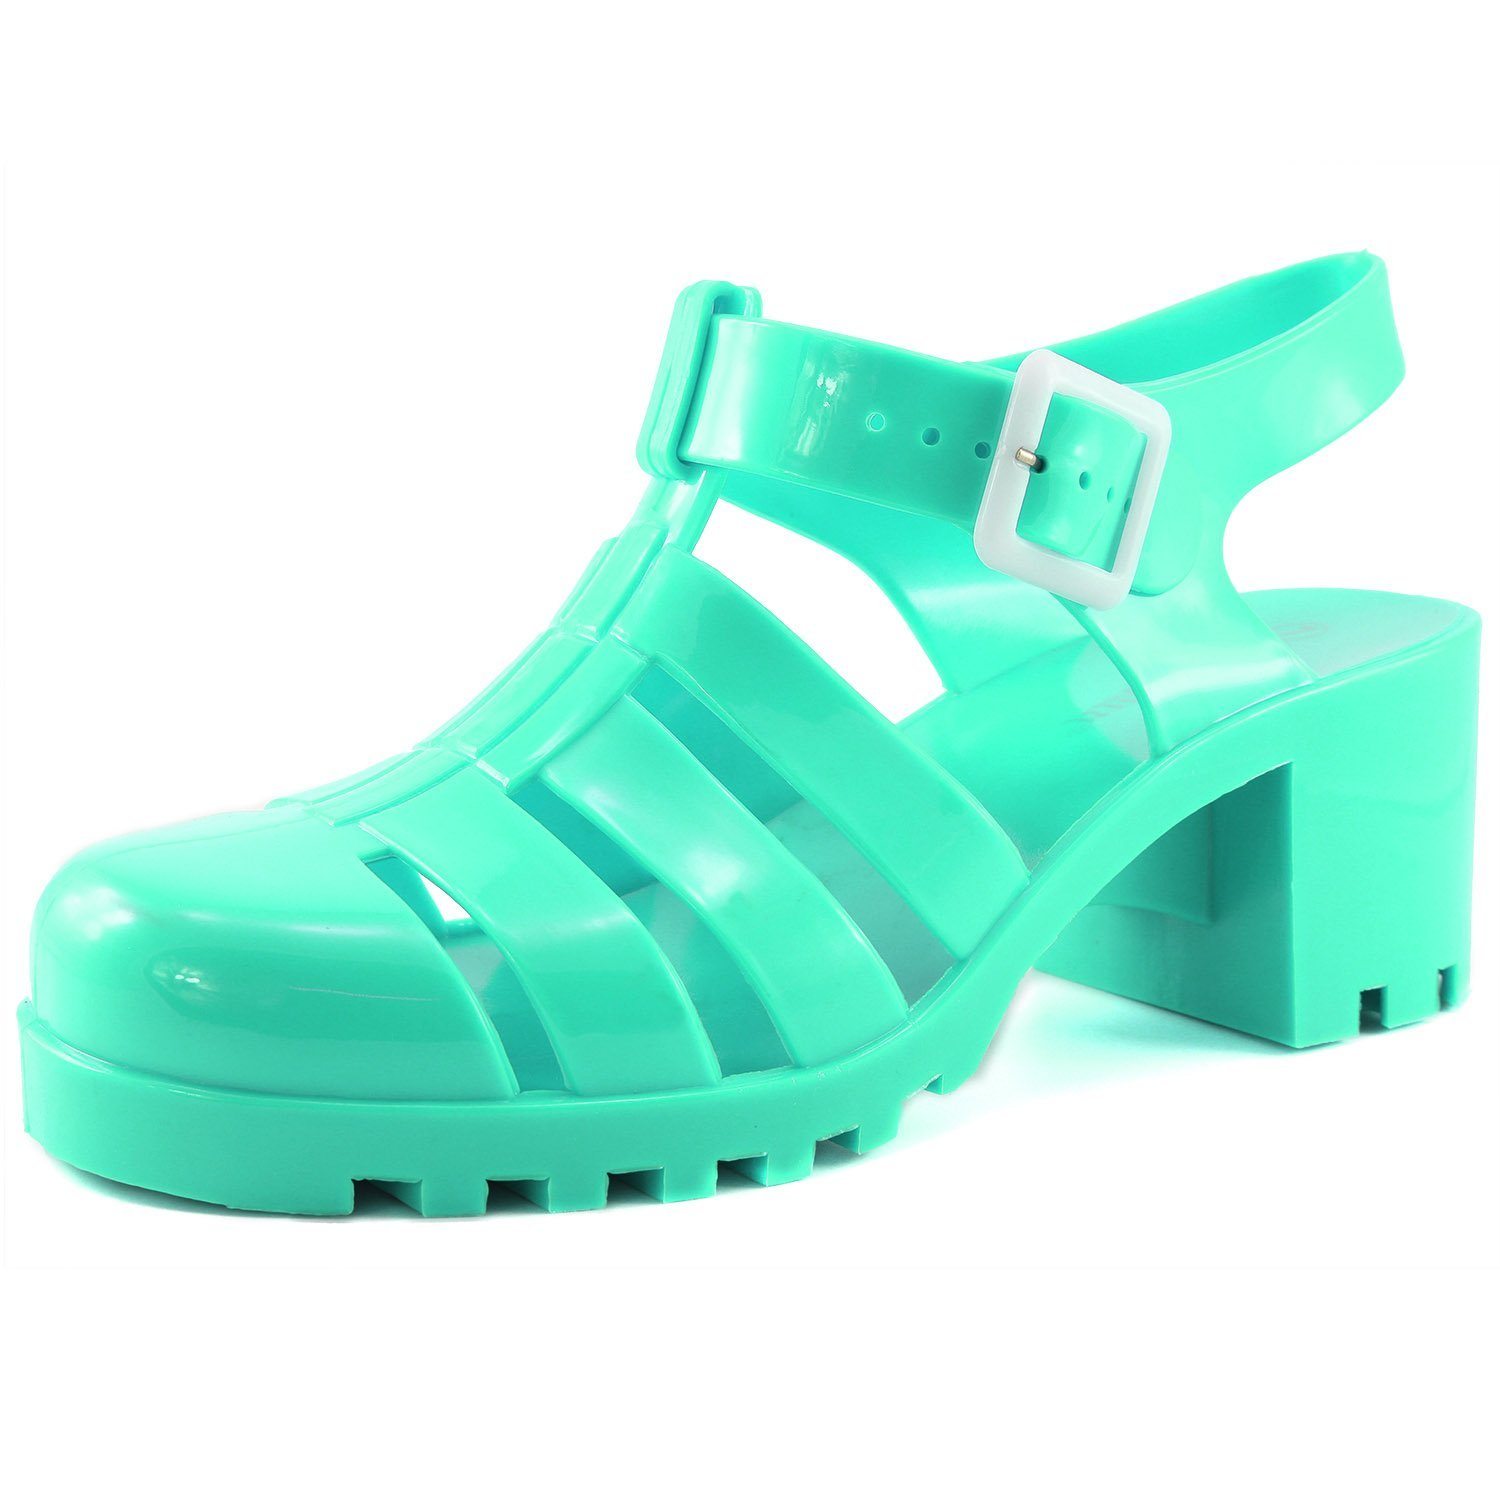 9ffa24a50ed3 Get Quotations · Nature Breeze Women's Chunky High Heels Jelly Round Toe  Strappy Plastic Caged Gladiator Sandal Shoes